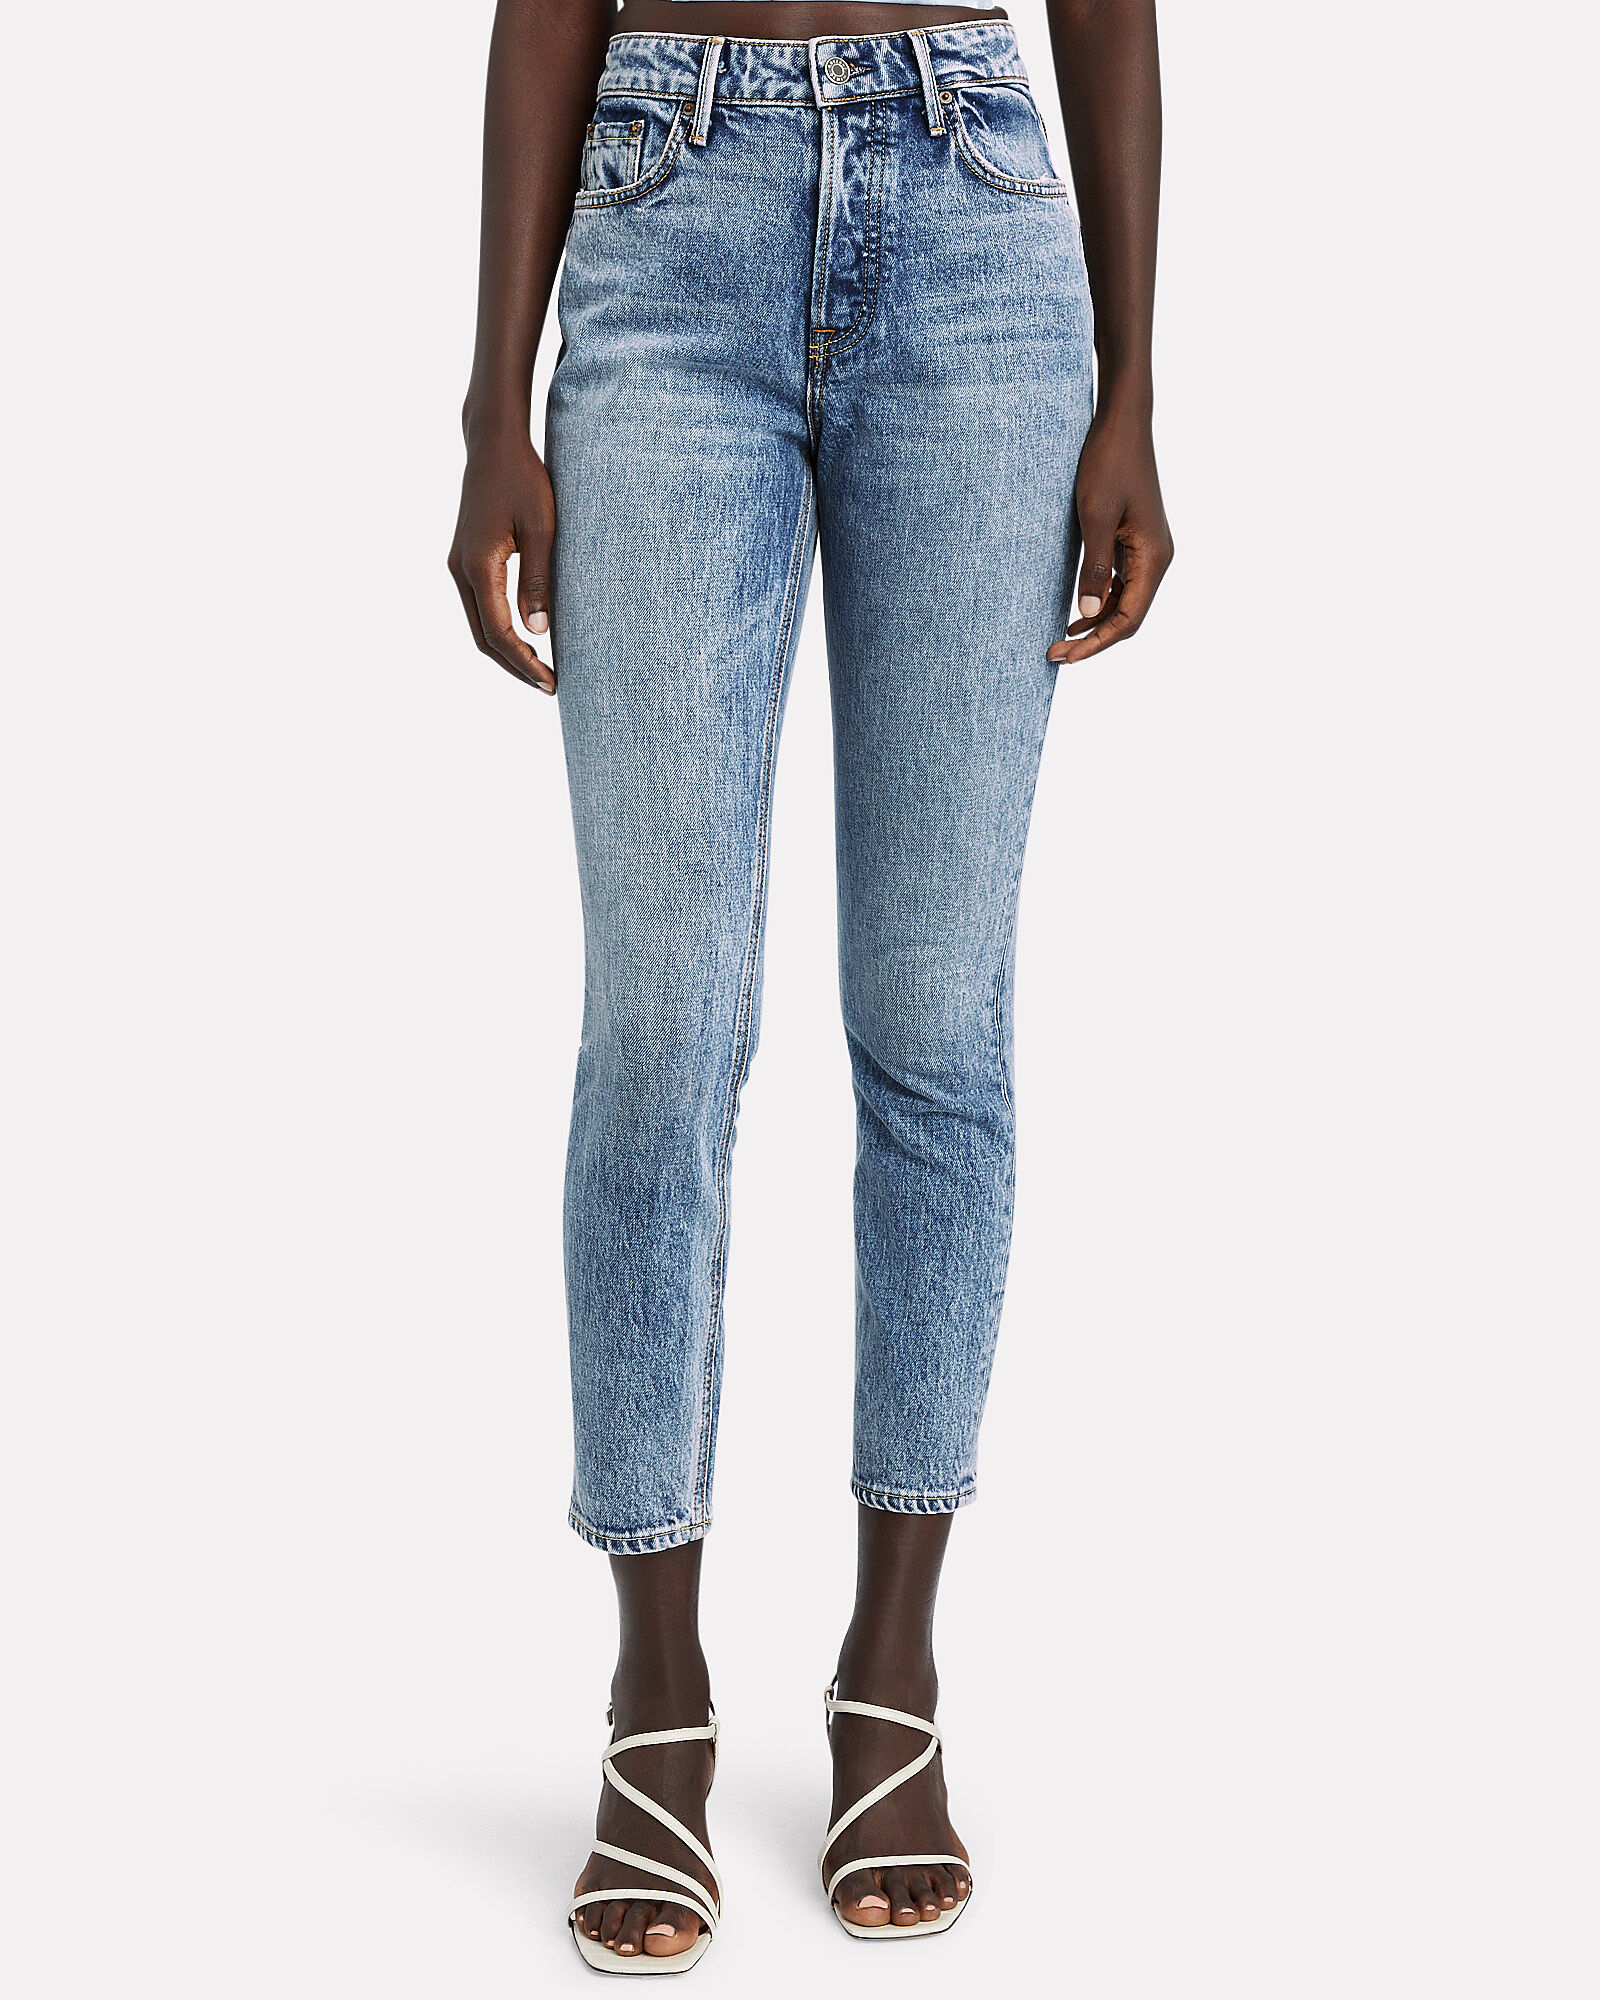 Karolina High-Rise Skinny Jeans, DENIM, hi-res